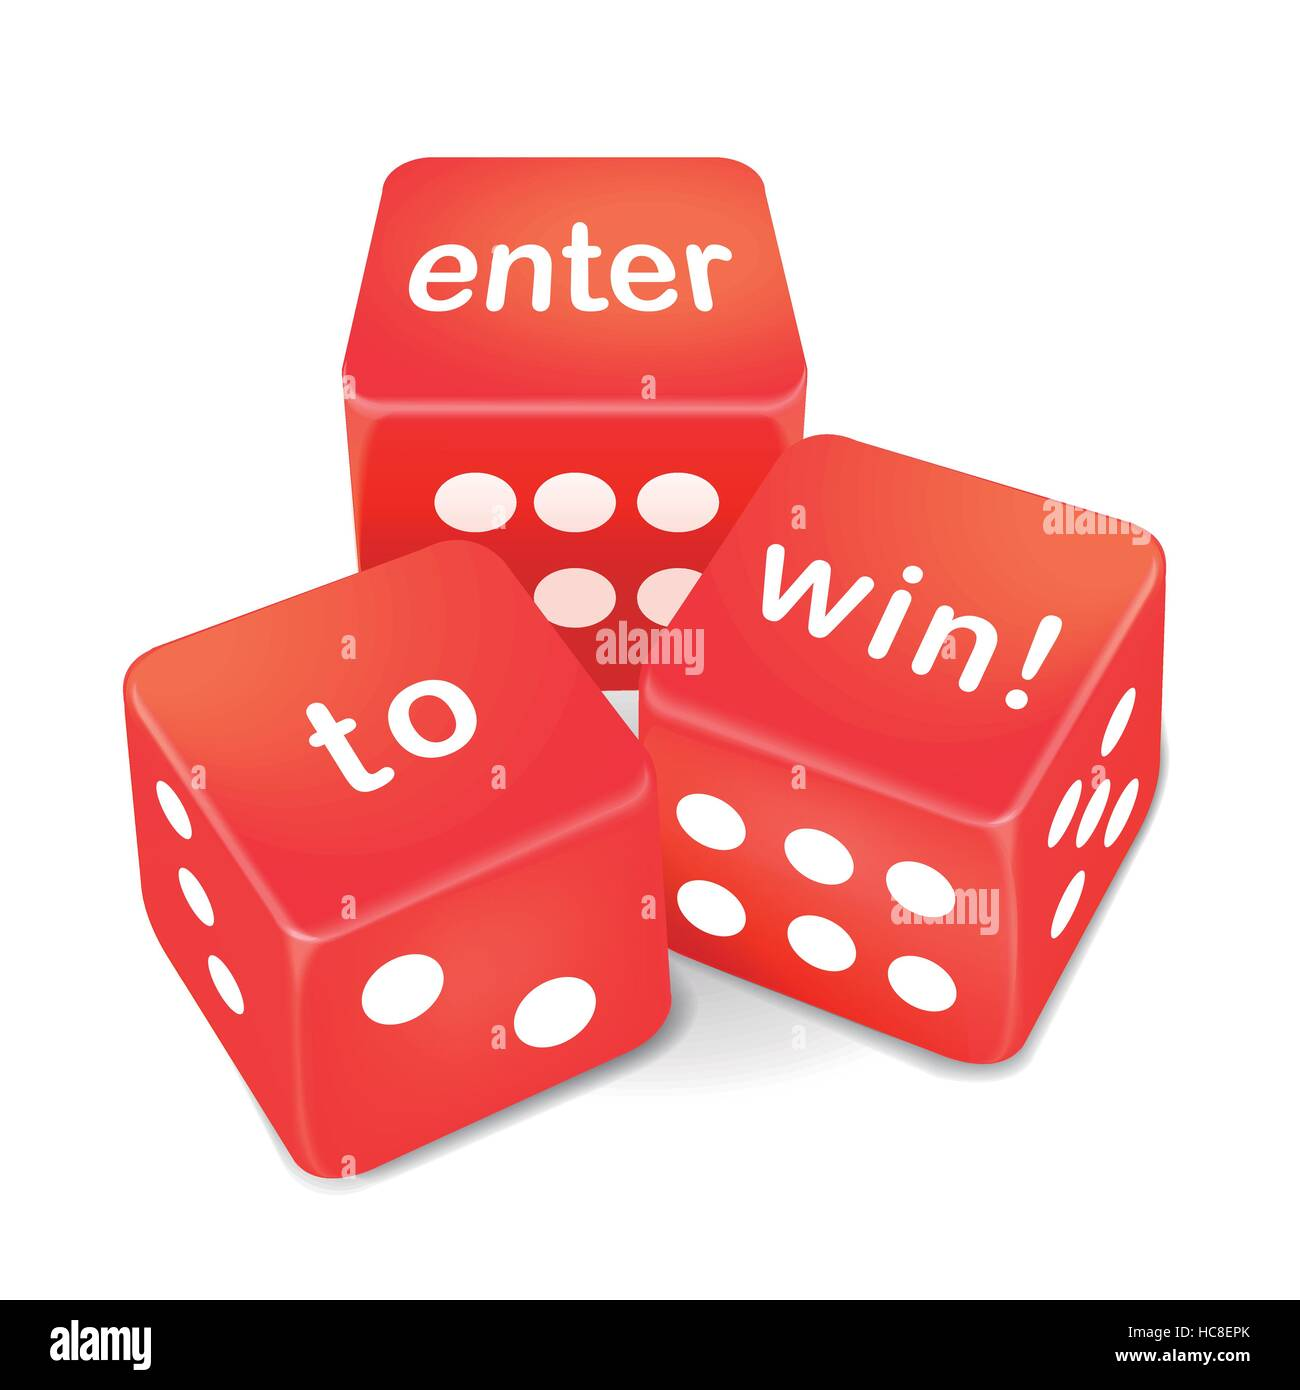 enter to win words on three red dice over white background - Stock Image